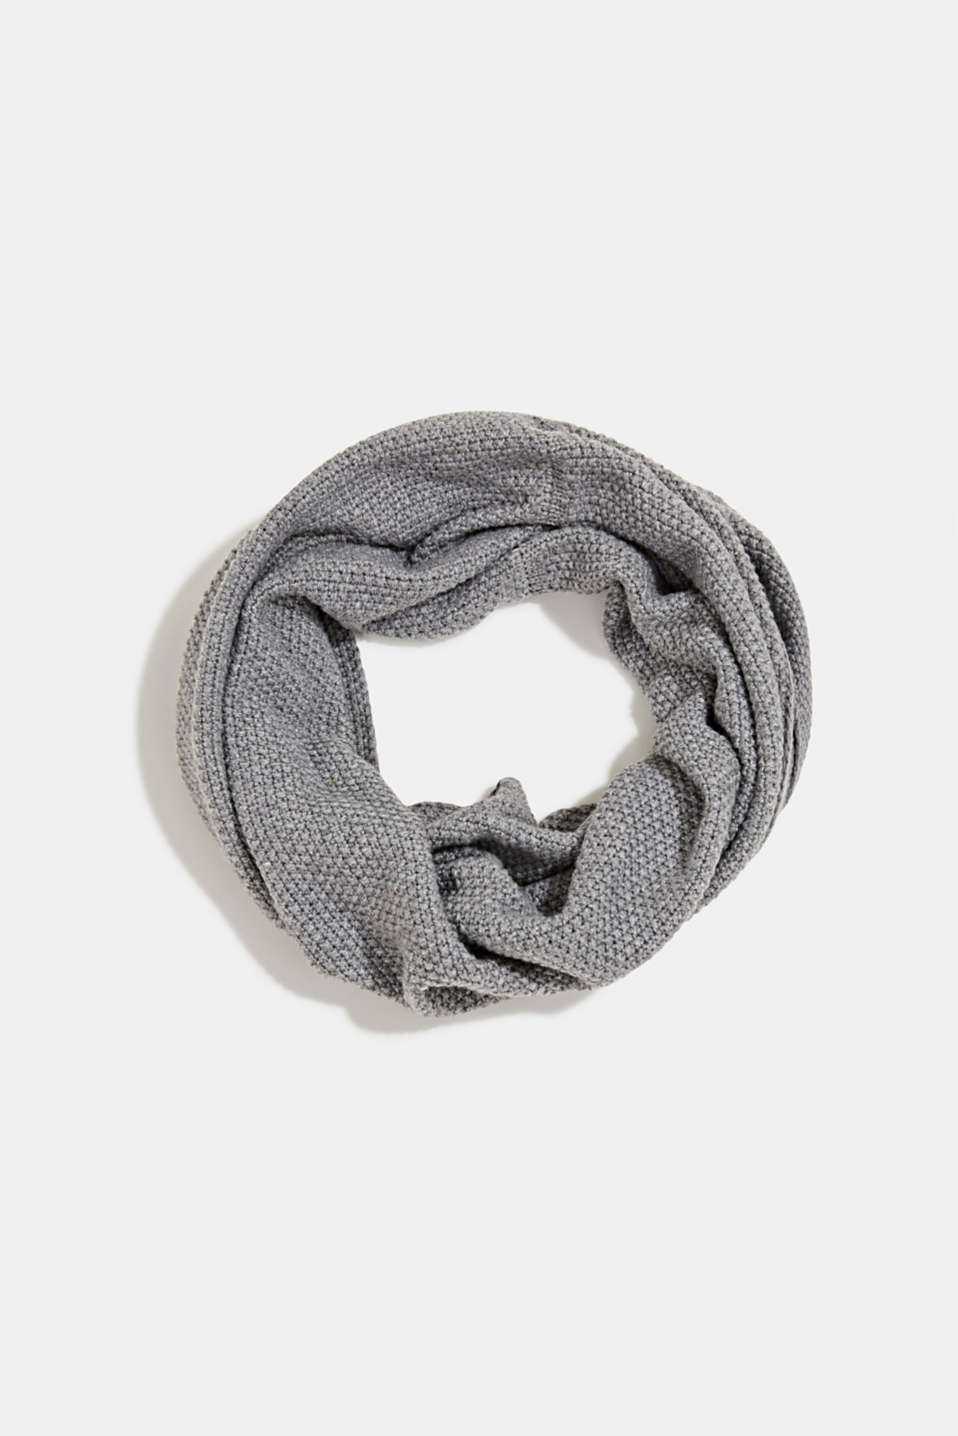 Esprit - Snood scarf made of recycled yarn